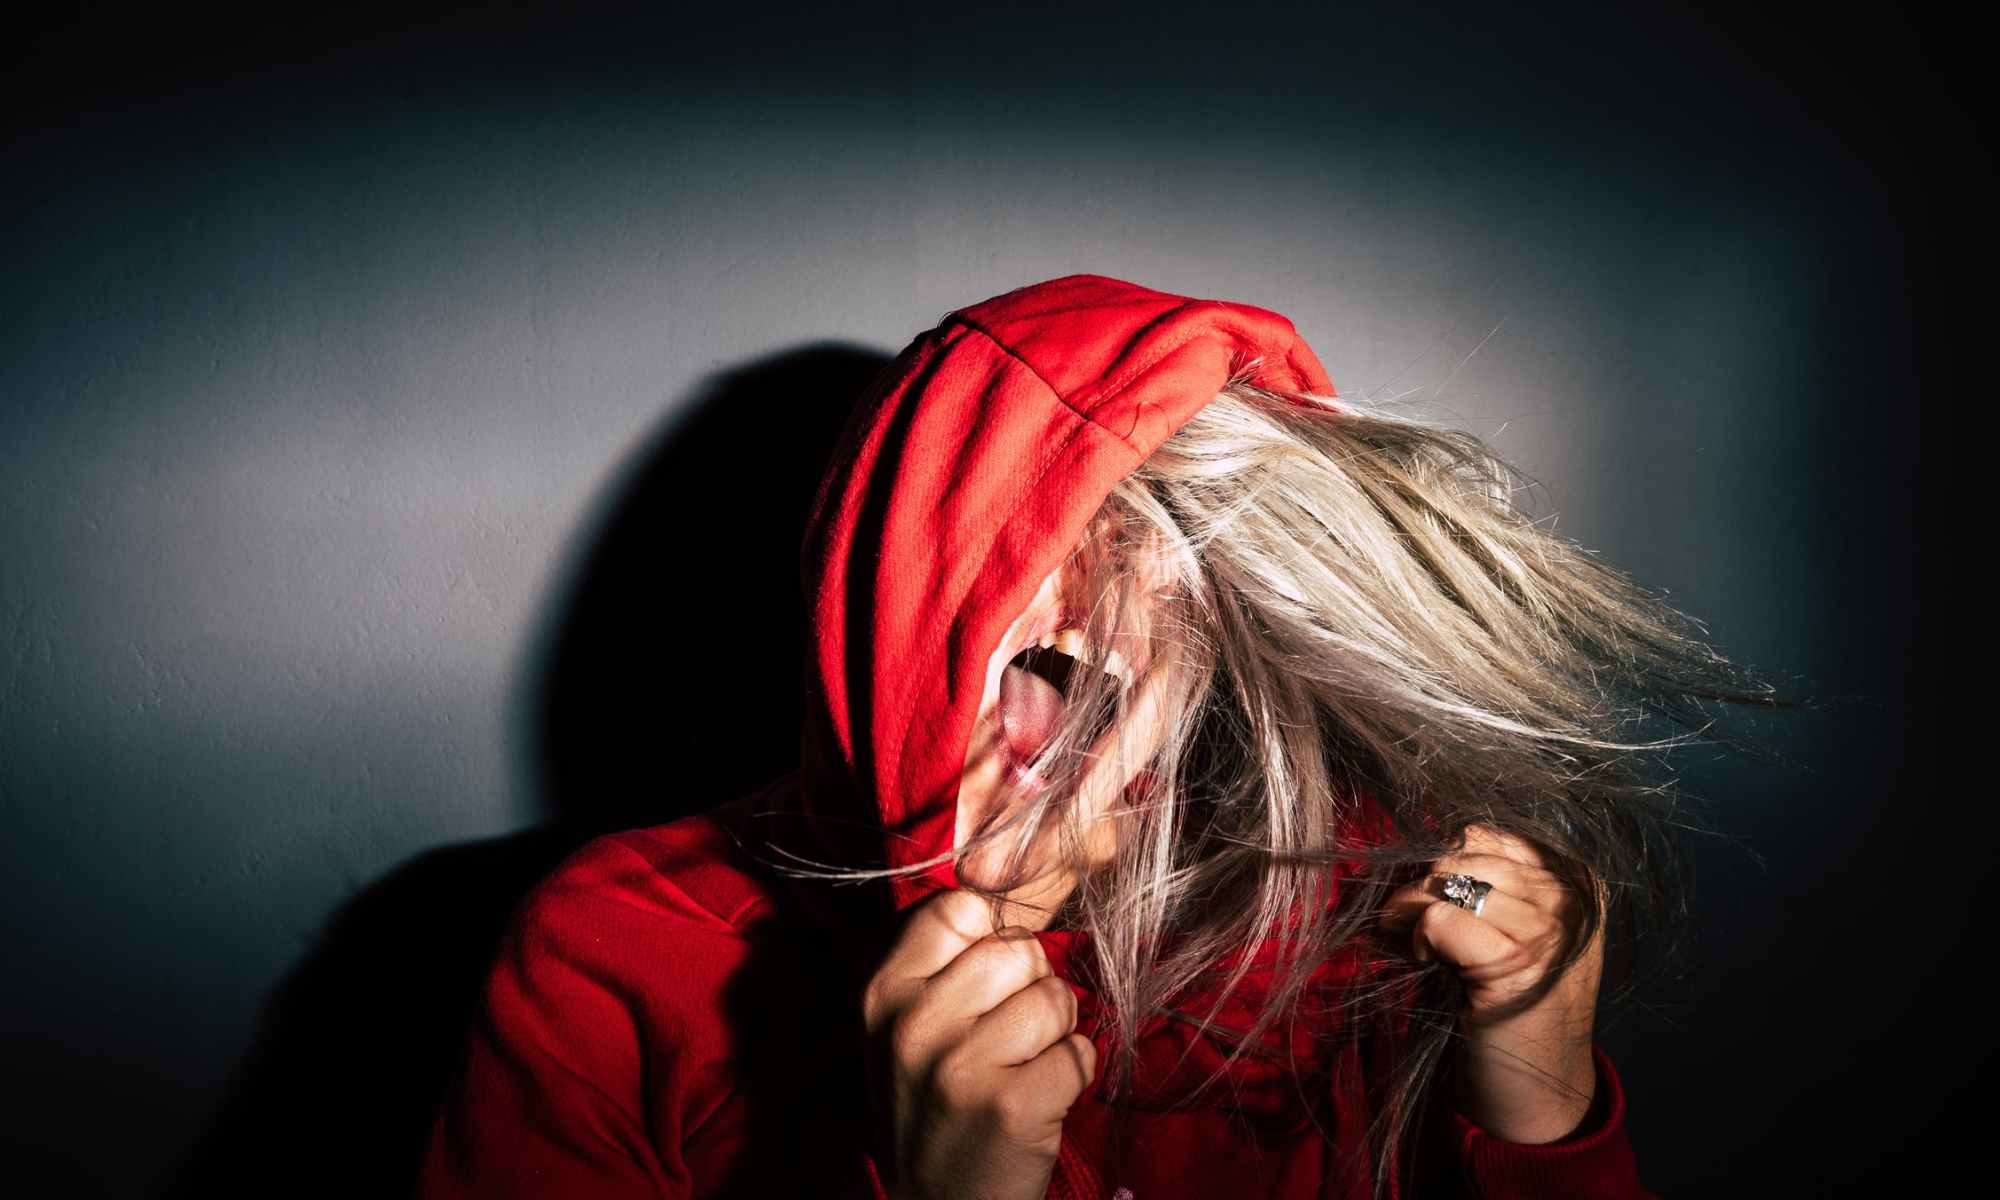 Angry blonde woman wearing red hoodie and yelling